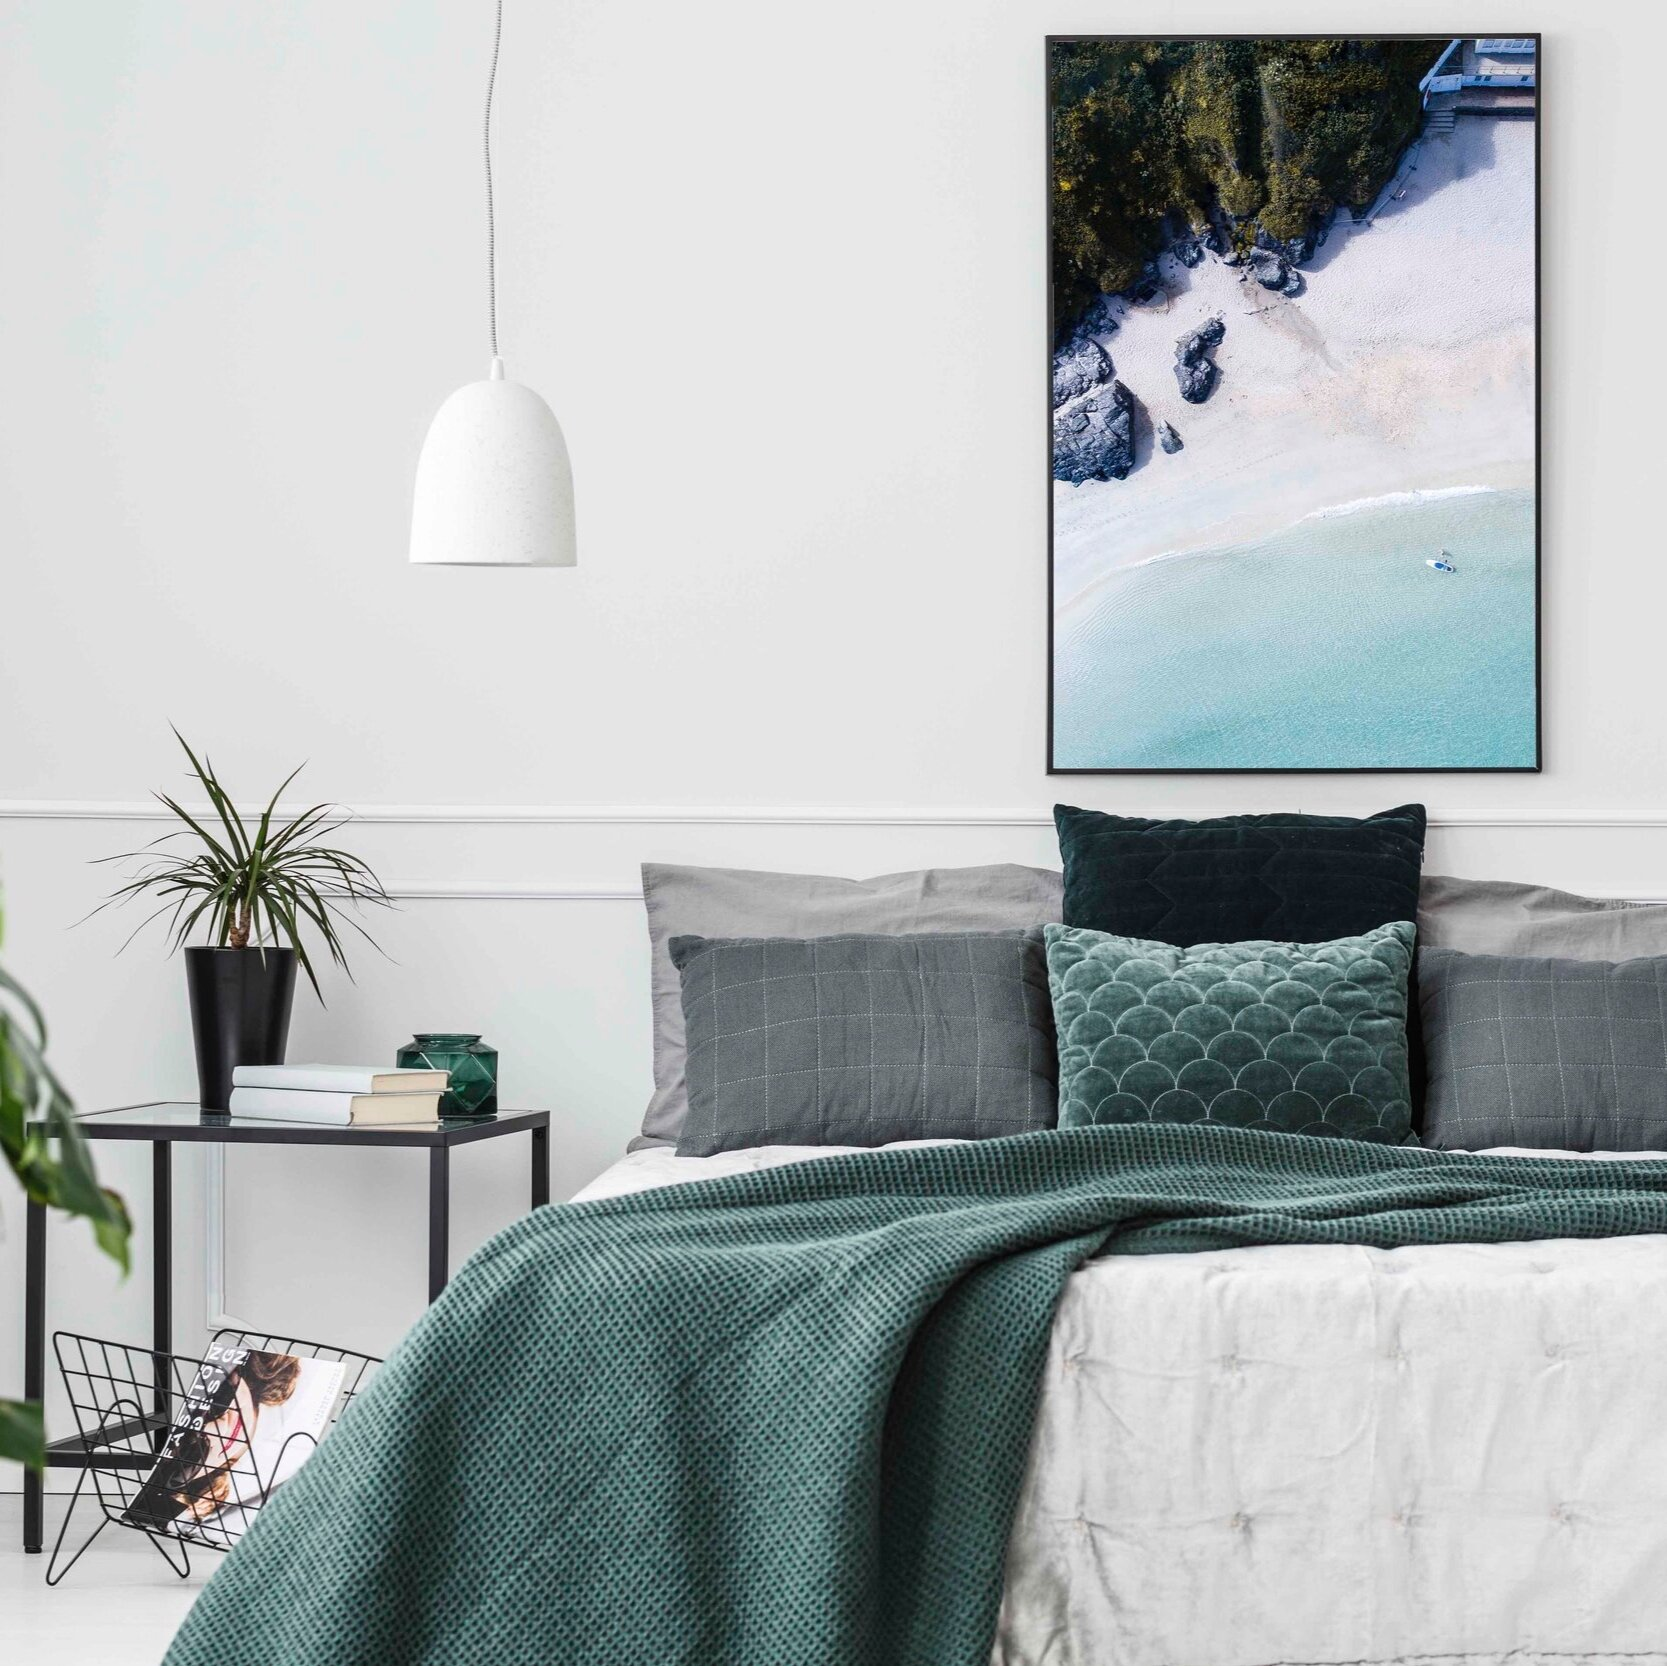 RELAX - The bedroom is a place of relaxation, comfort, somewhere to switch off. Add a clean, coastal print to a bedroom wall, after all nothing says relaxation like tropical blue waters and white sand beaches.